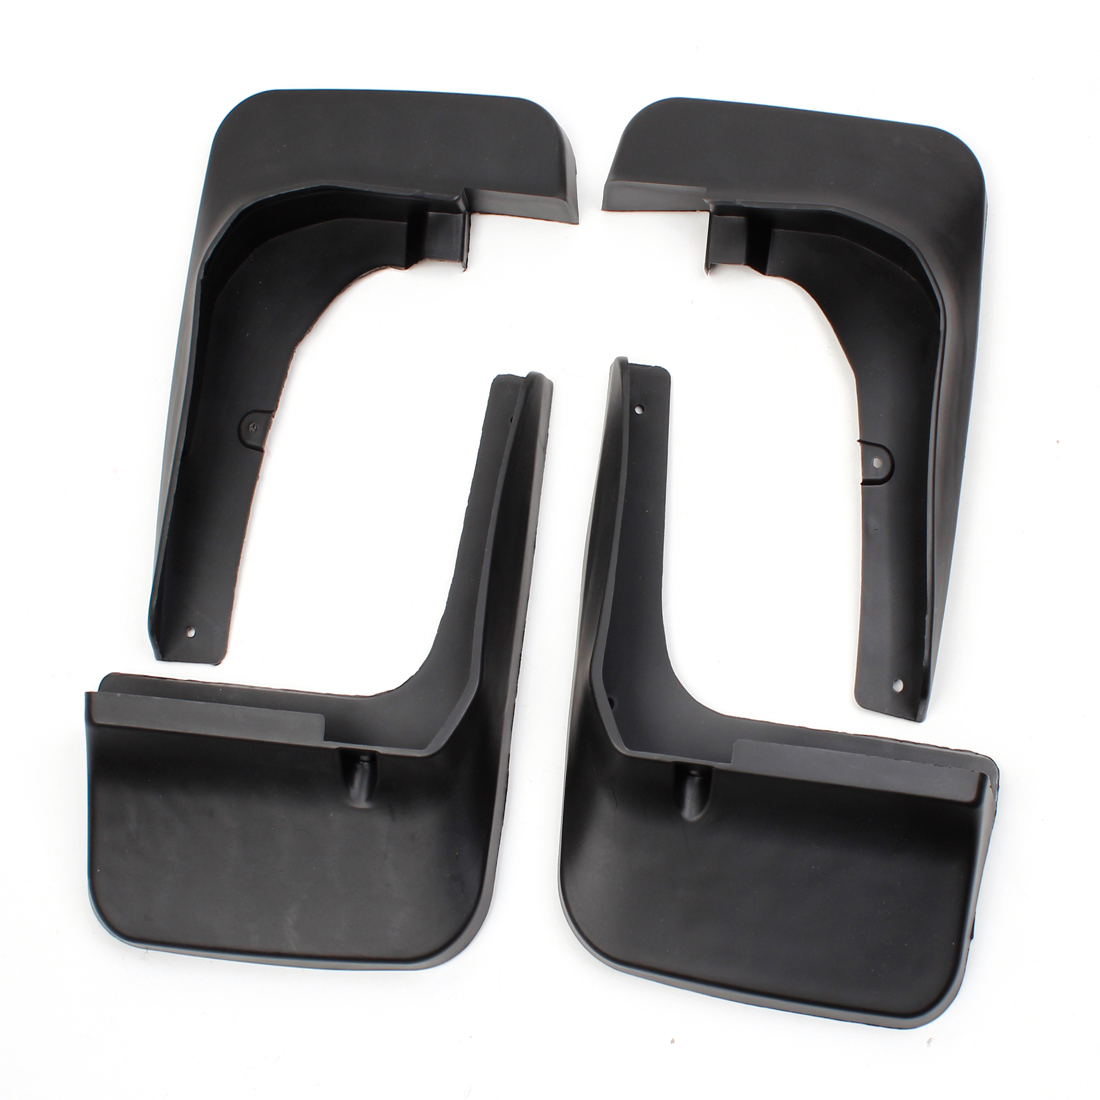 Set of 4 Mudguard Splash Guards Mud Flaps Front Rear for Toyota Highlander 2012